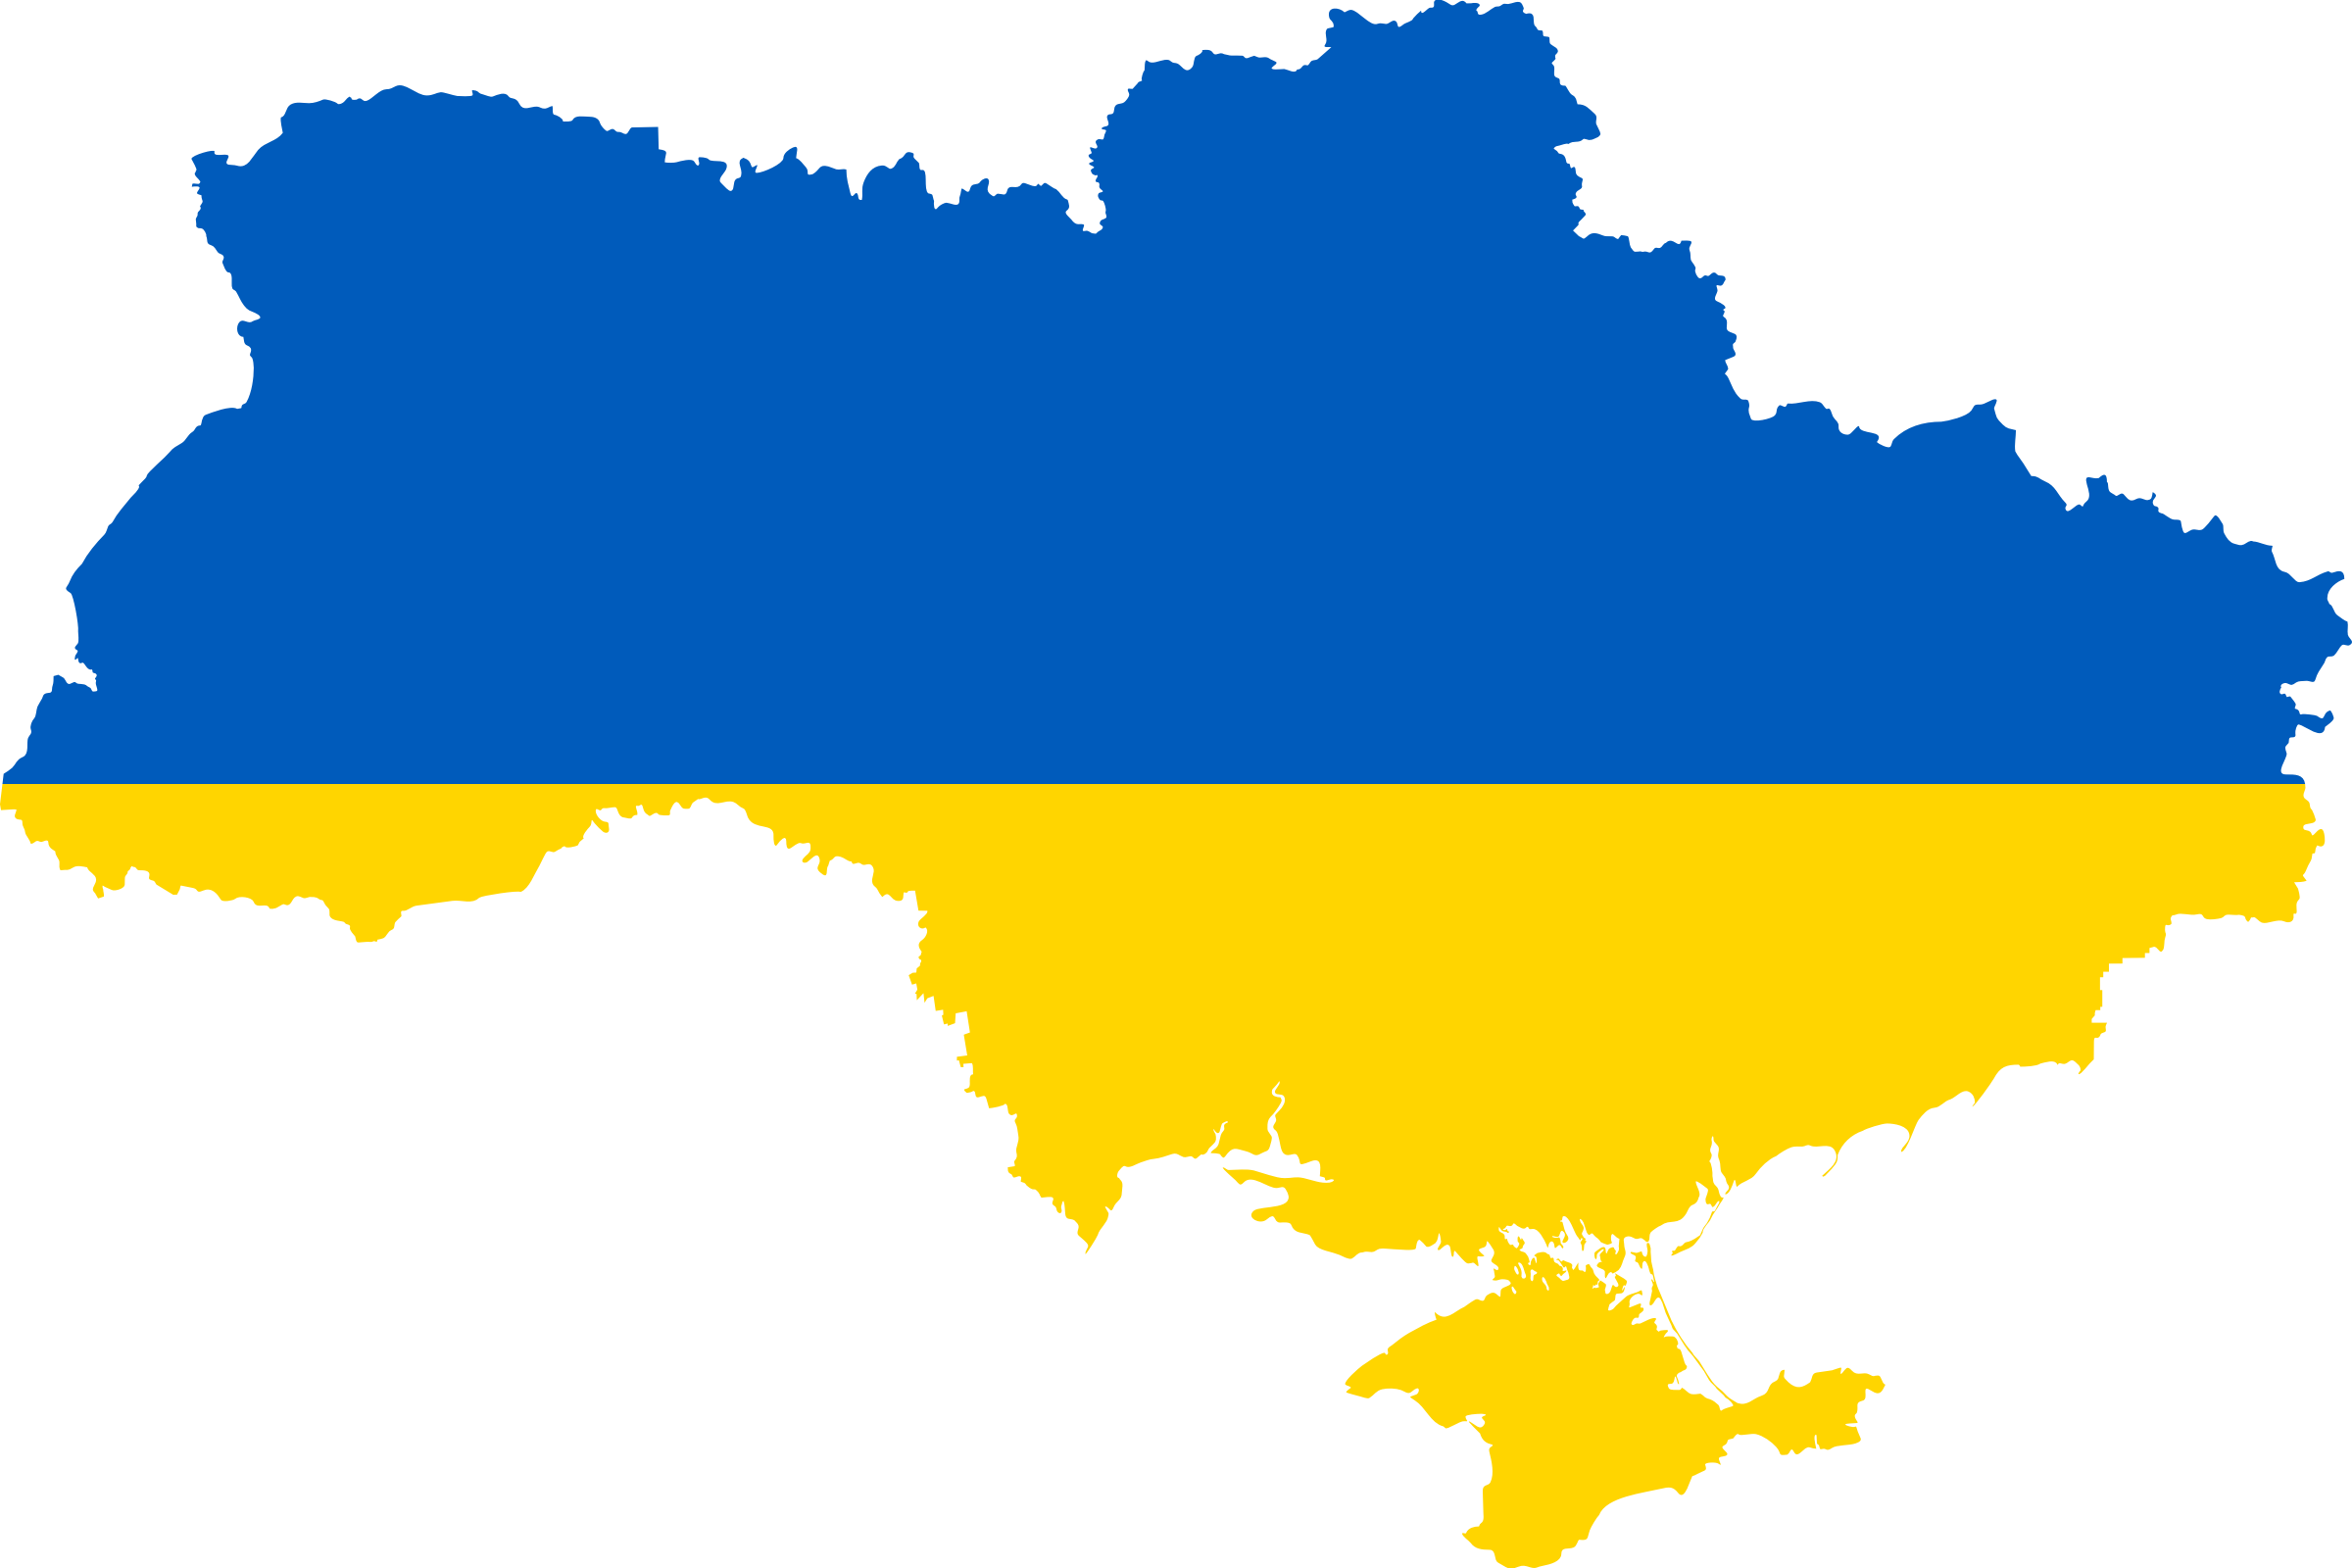 Ukrainian Flags (Ukraine) from The World Flag Database